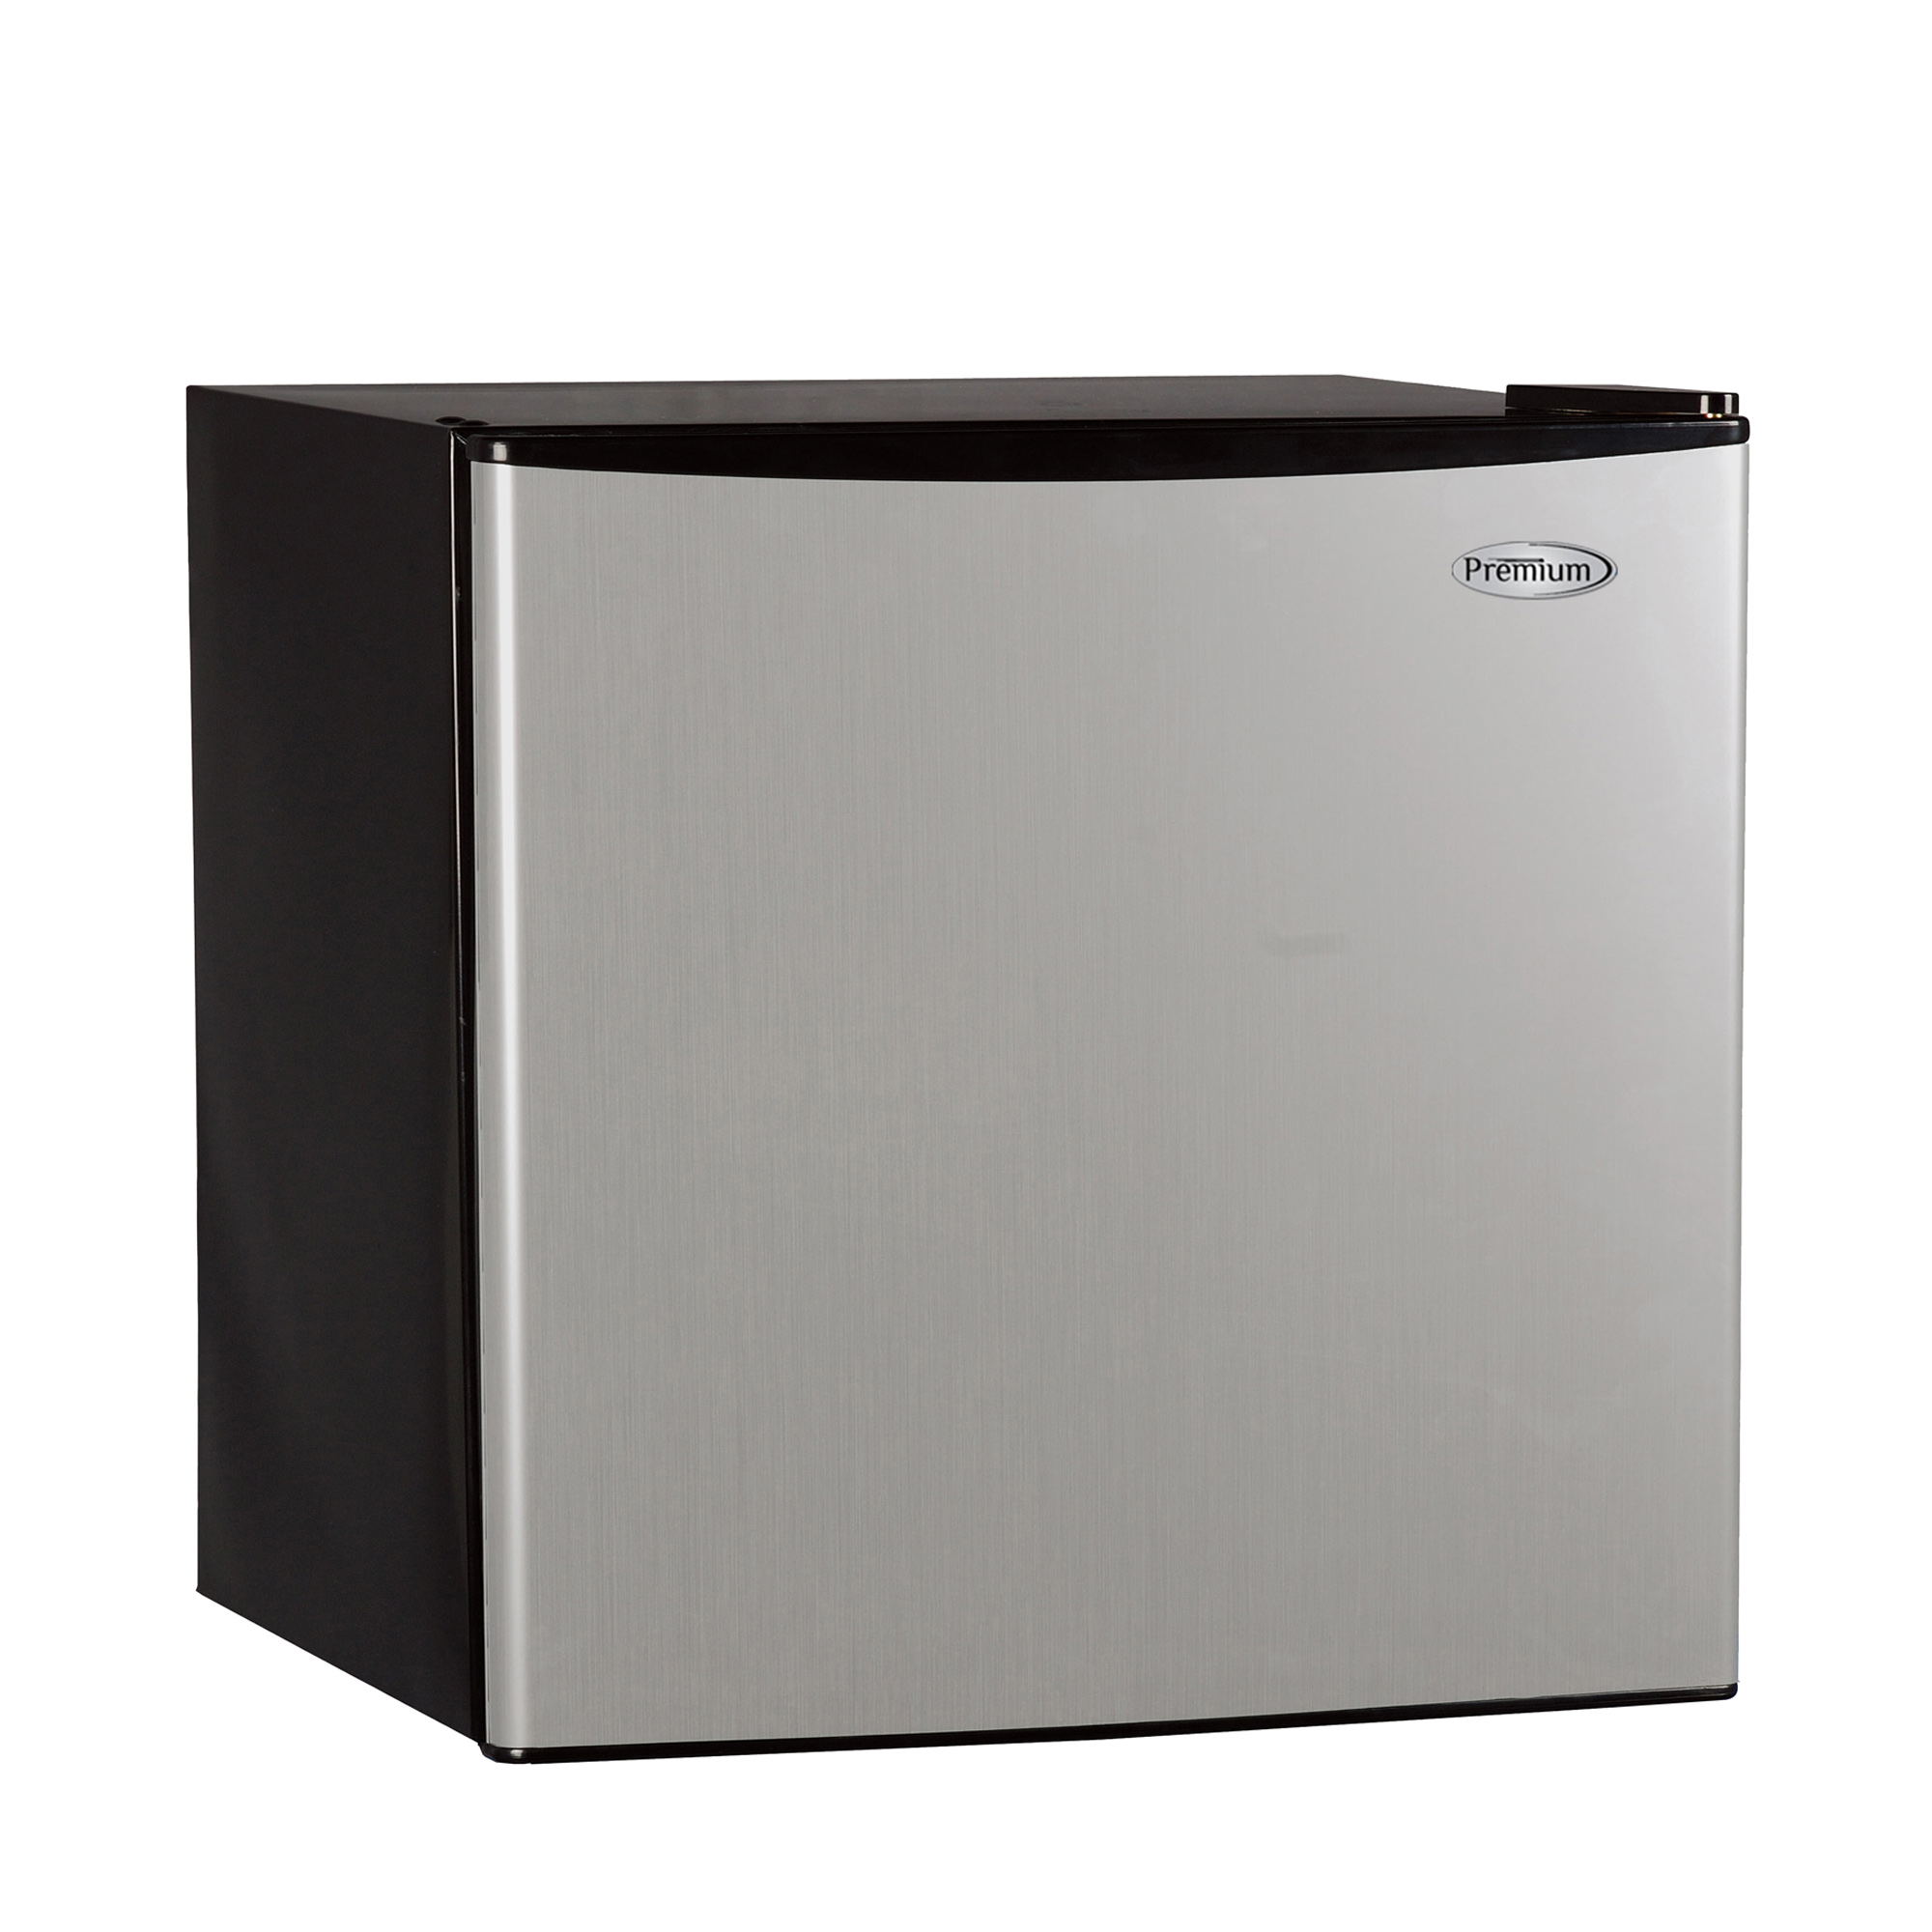 FRIDGE 1.6 'platinum Premium